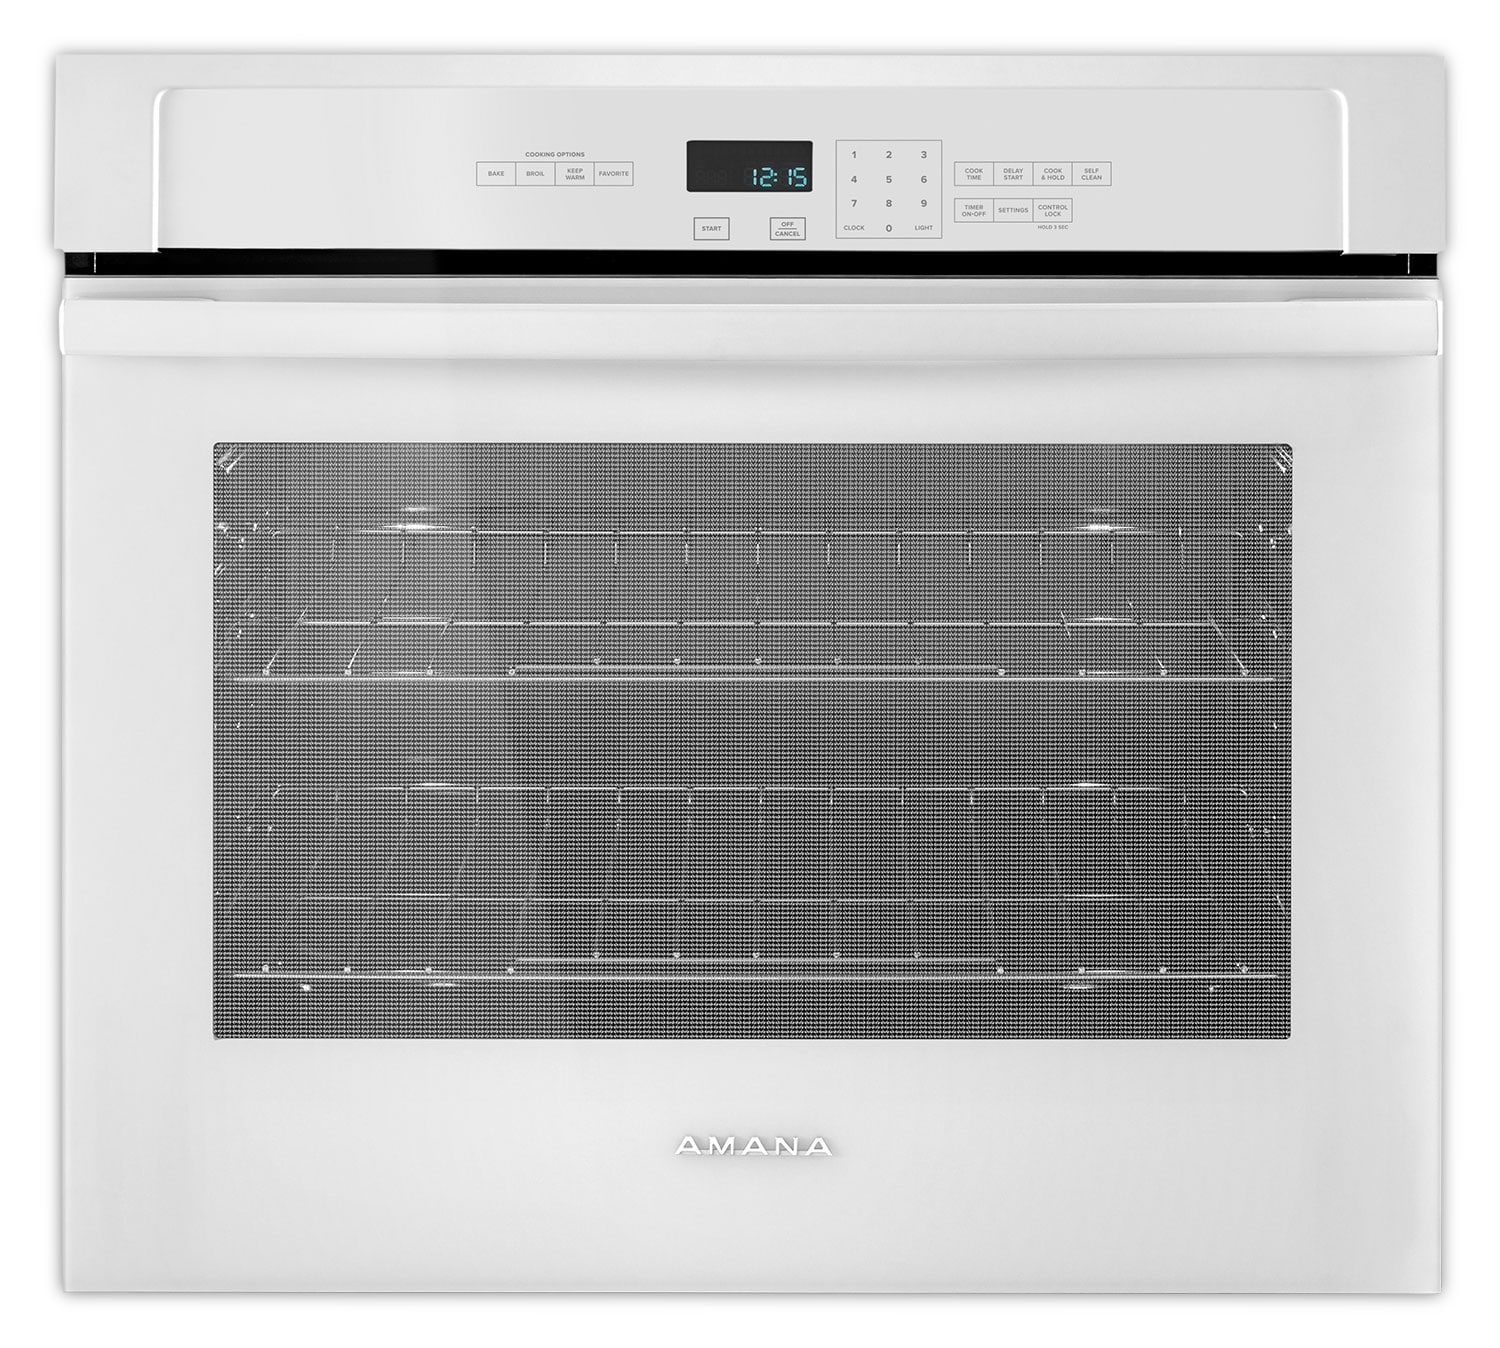 Cooking Products - Amana White Electric Wall Oven (5.0 Cu. Ft.) - AWO6313SFW